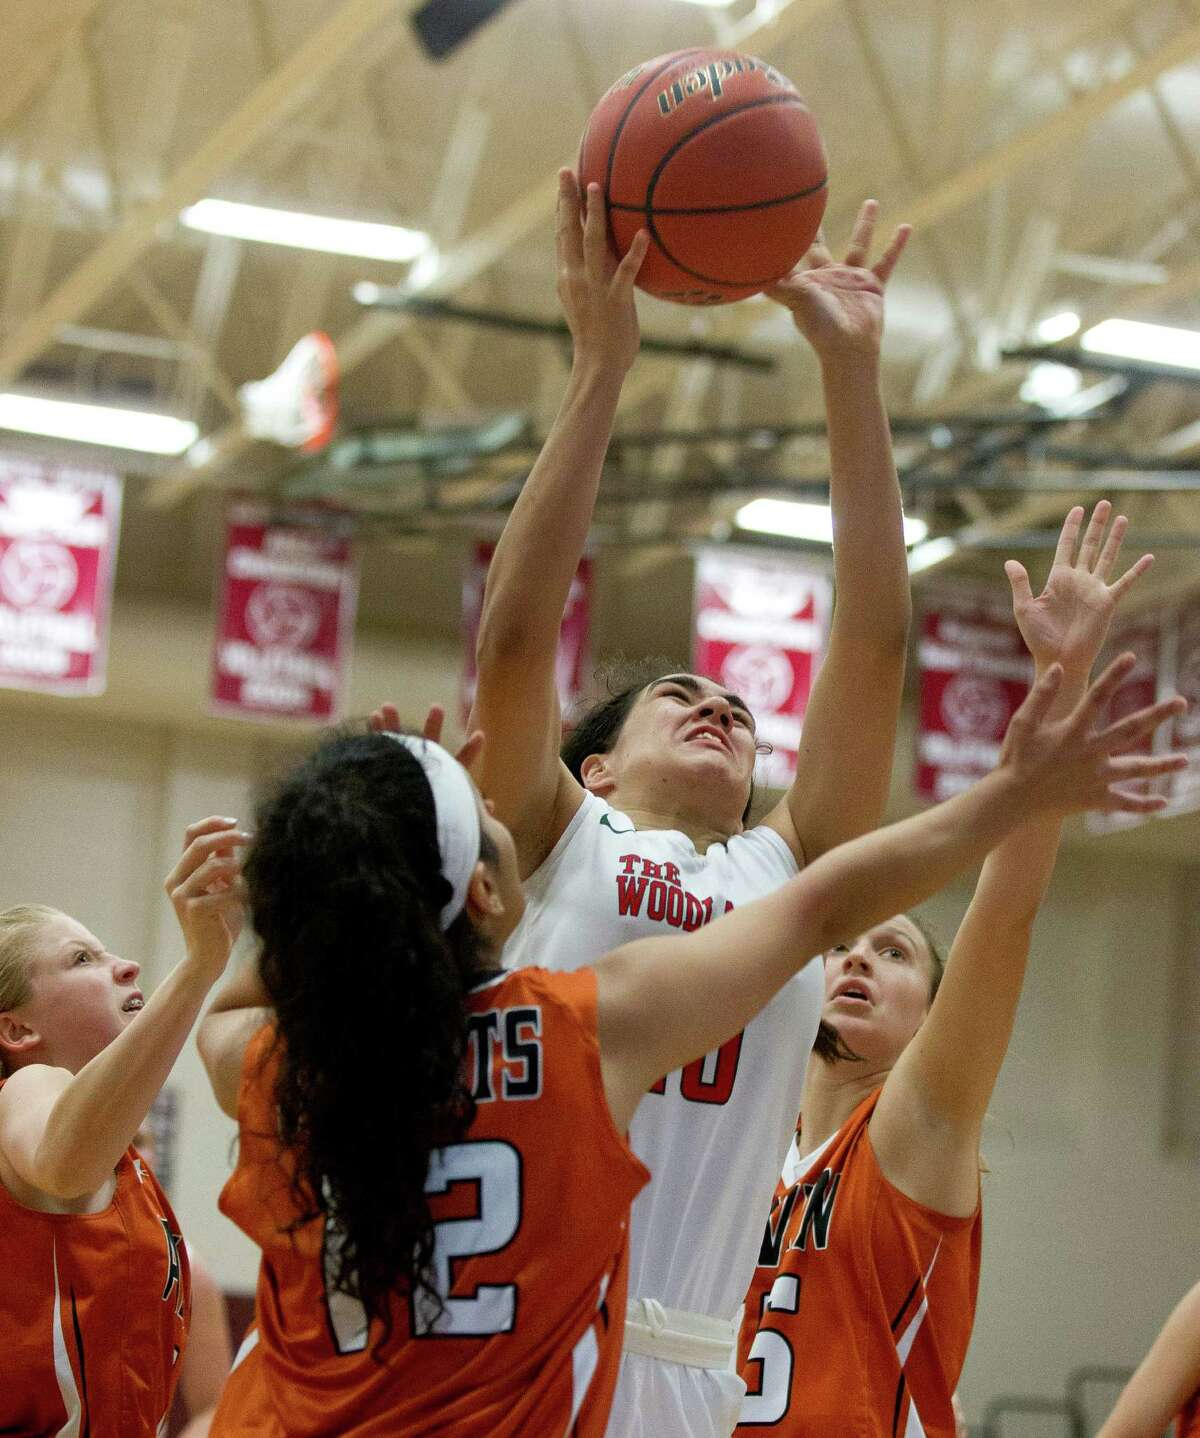 The Woodlands forward Luisa De La Rosa (10) grabs a rebound over Alvin guard Dalila Duran during the third quarter of a high school girls basketball game at the Magnolia Holiday Hoop Fest Wednesday, Dec. 28, 2016, in Magnolia. The Woodlands defeated Alvin 43-28.